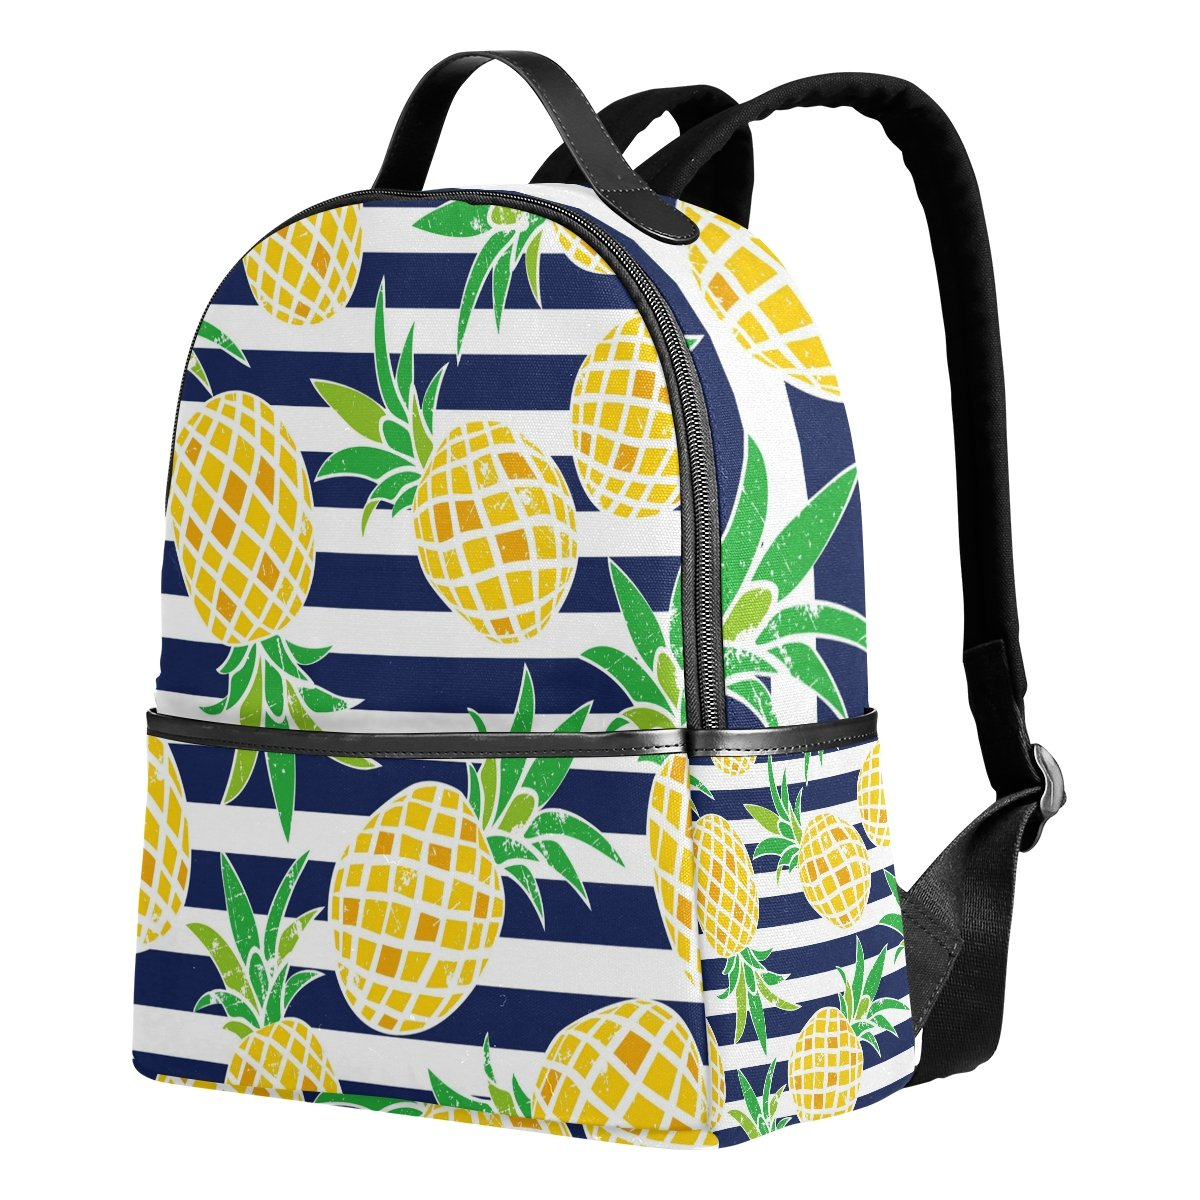 Use4 Striped Pineapple Fruit Retro Polyester Backpack School Travel Bag